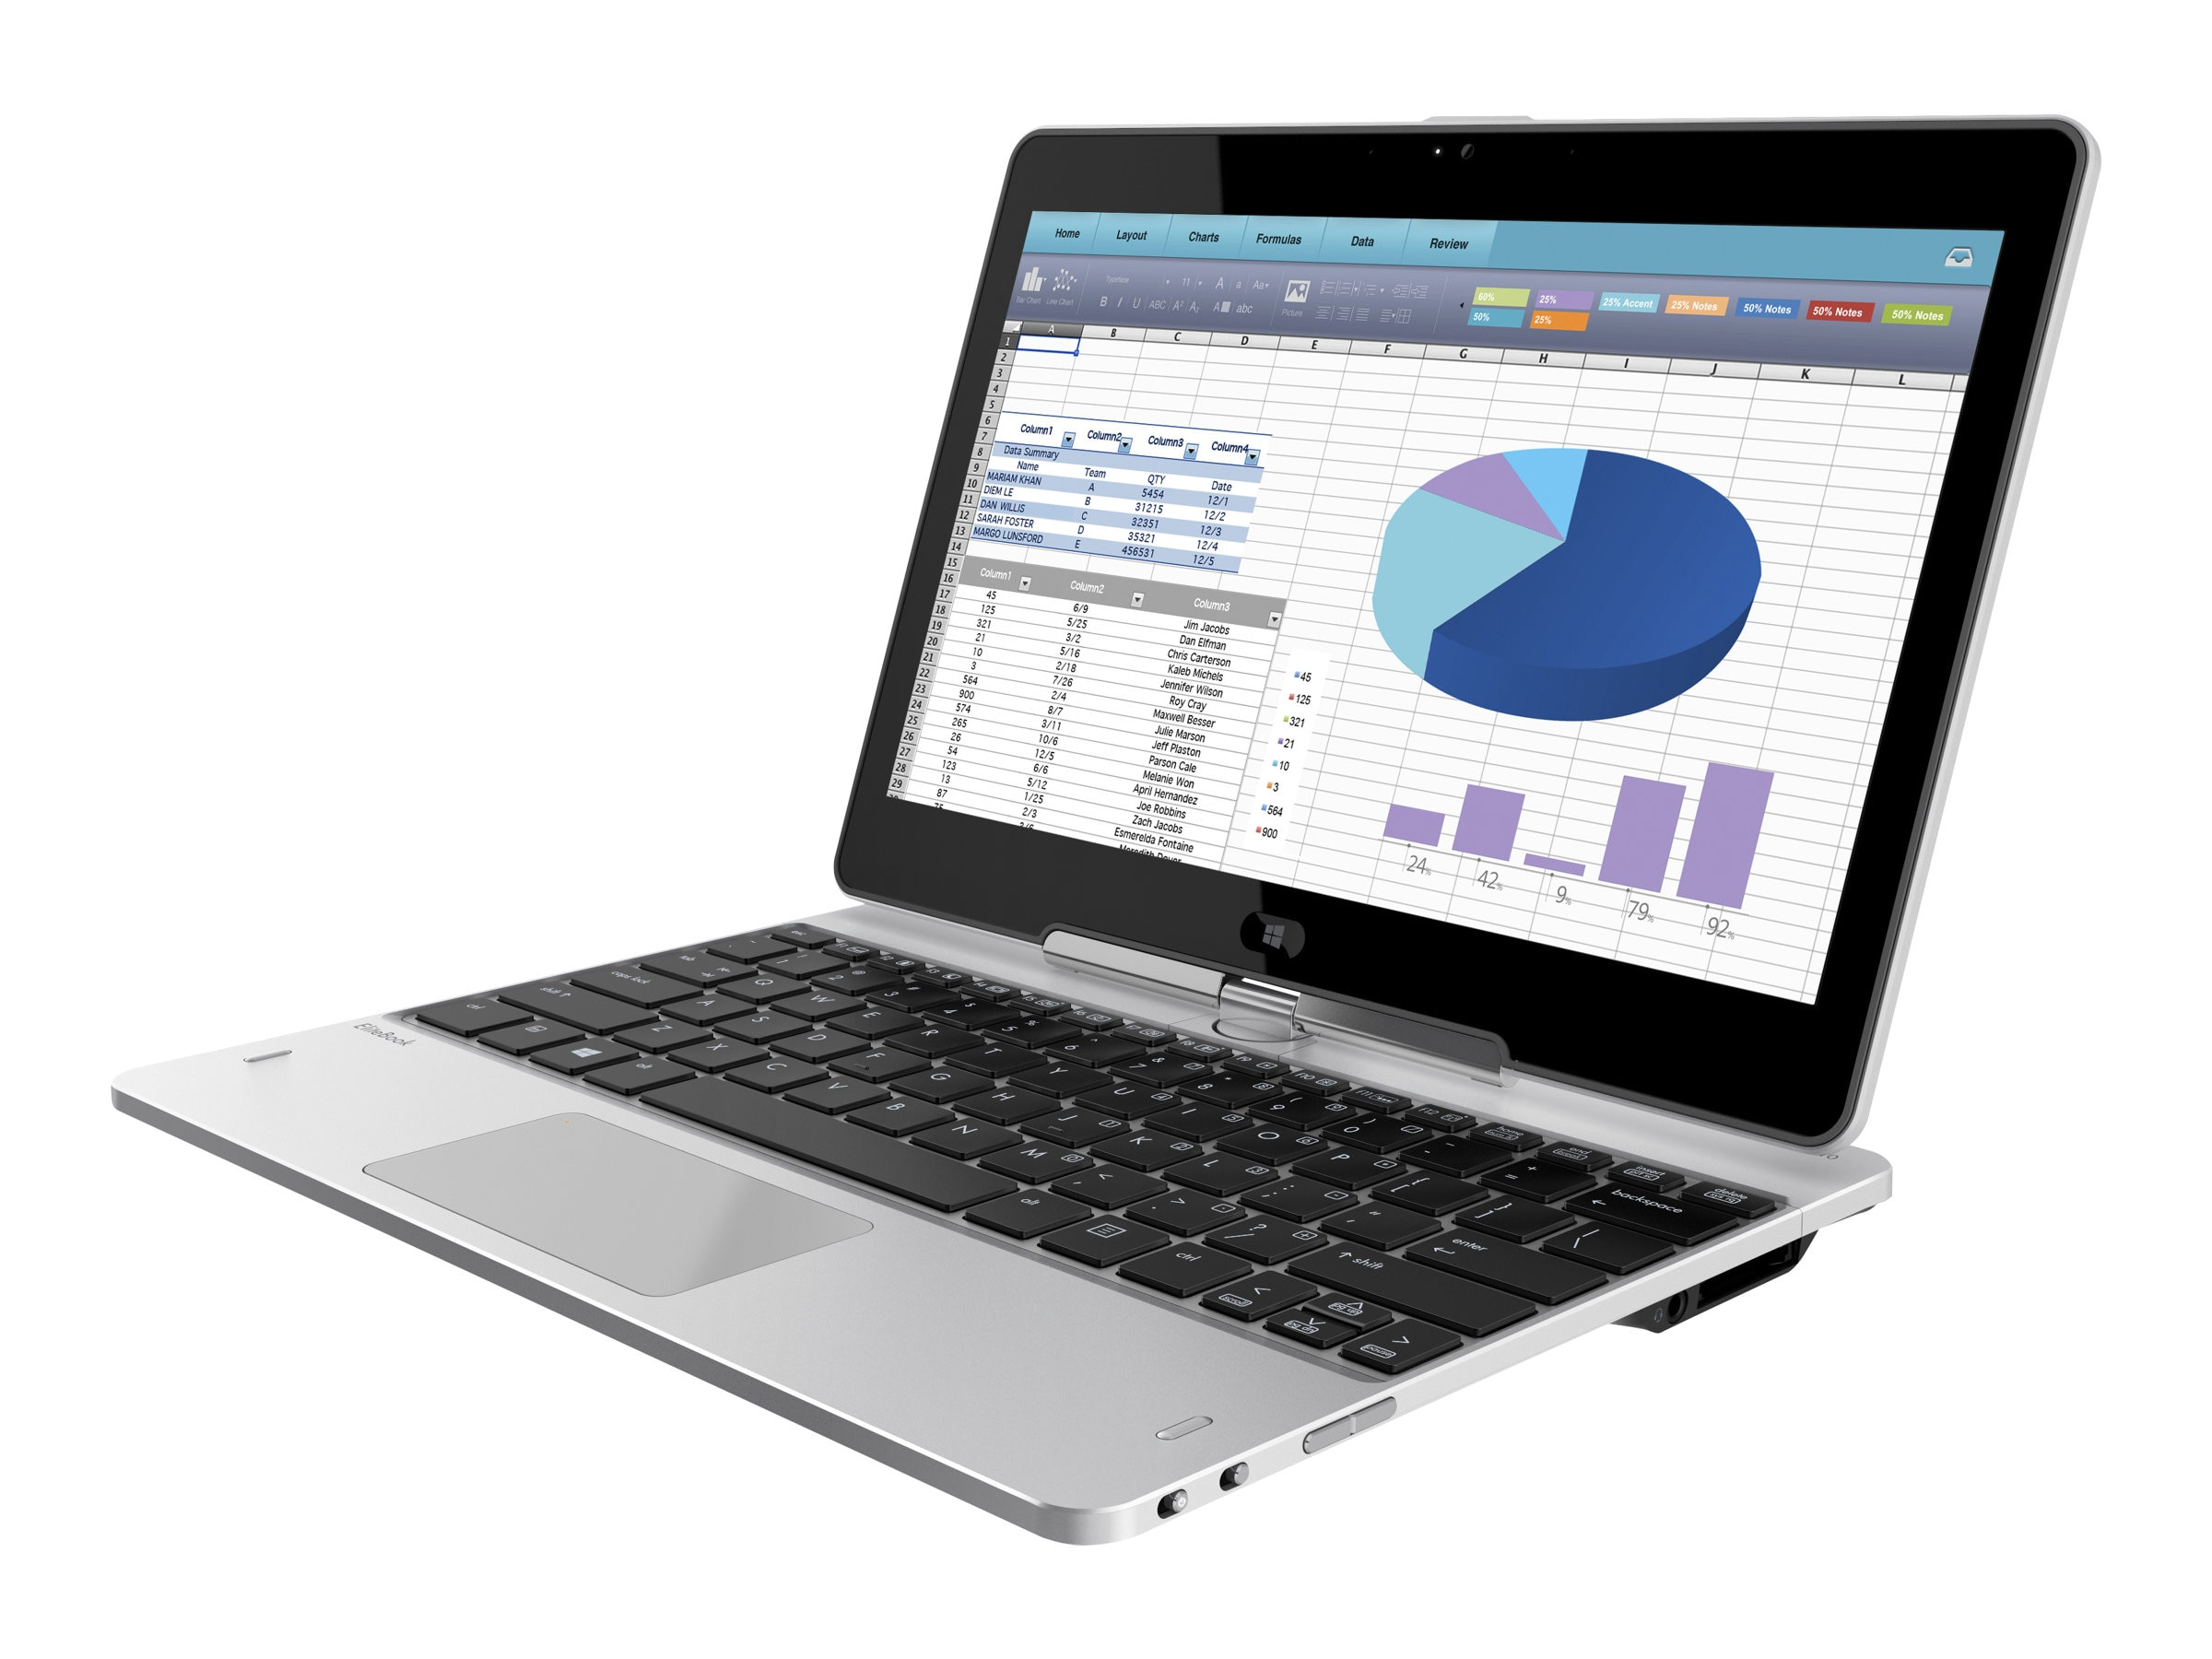 HP EliteBook Revolve 810 G3 Core i5-5200U 2.2GHz 4GB 128GB SSD ac abgn BT 11.6 HD MT W8.1P64